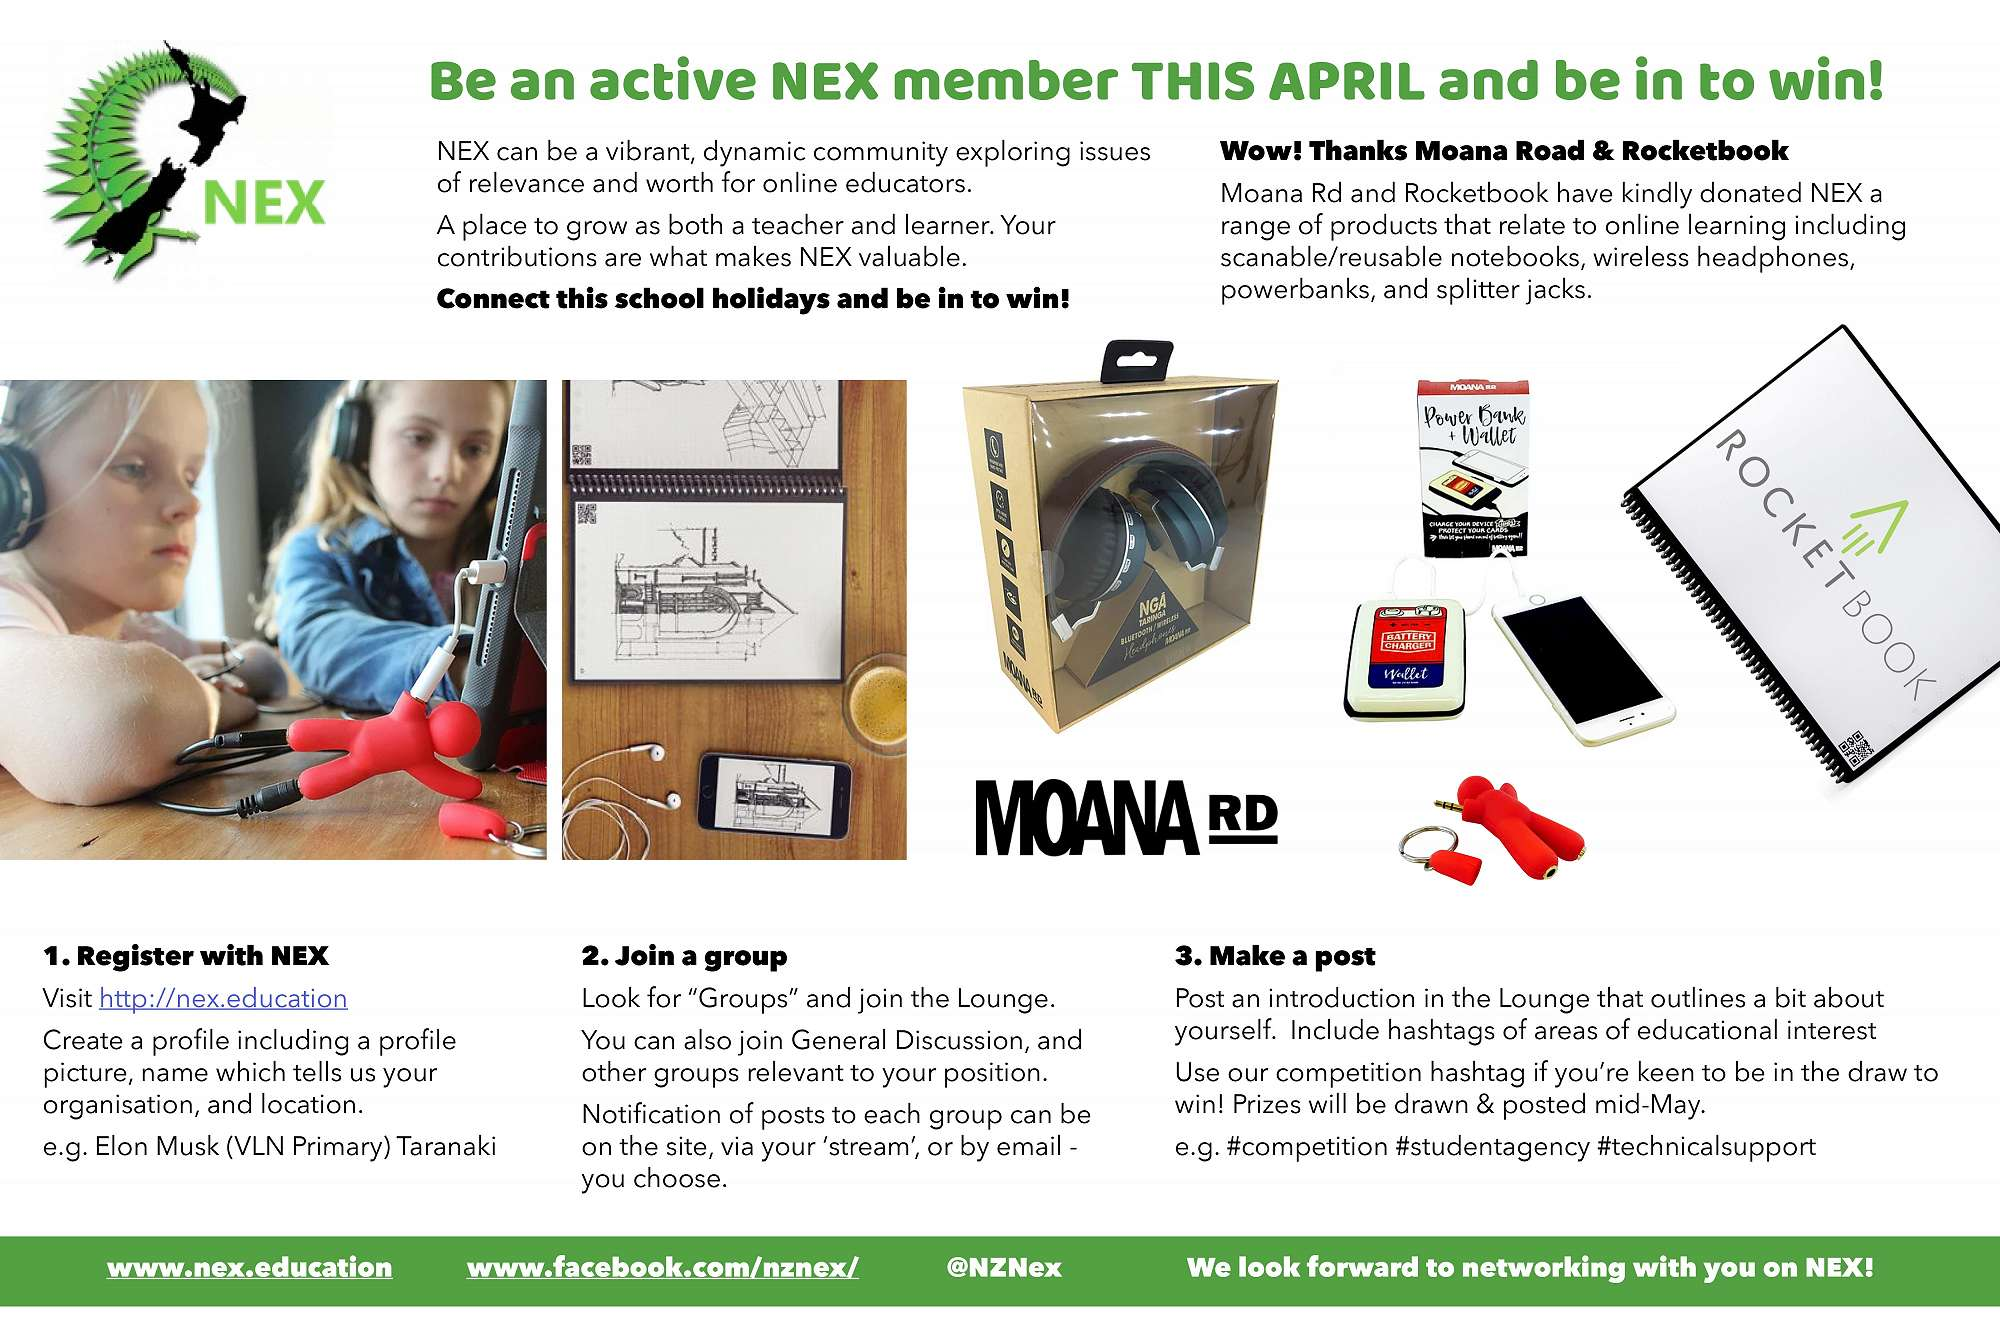 Be an active NEX member THIS APRIL and be in to win!